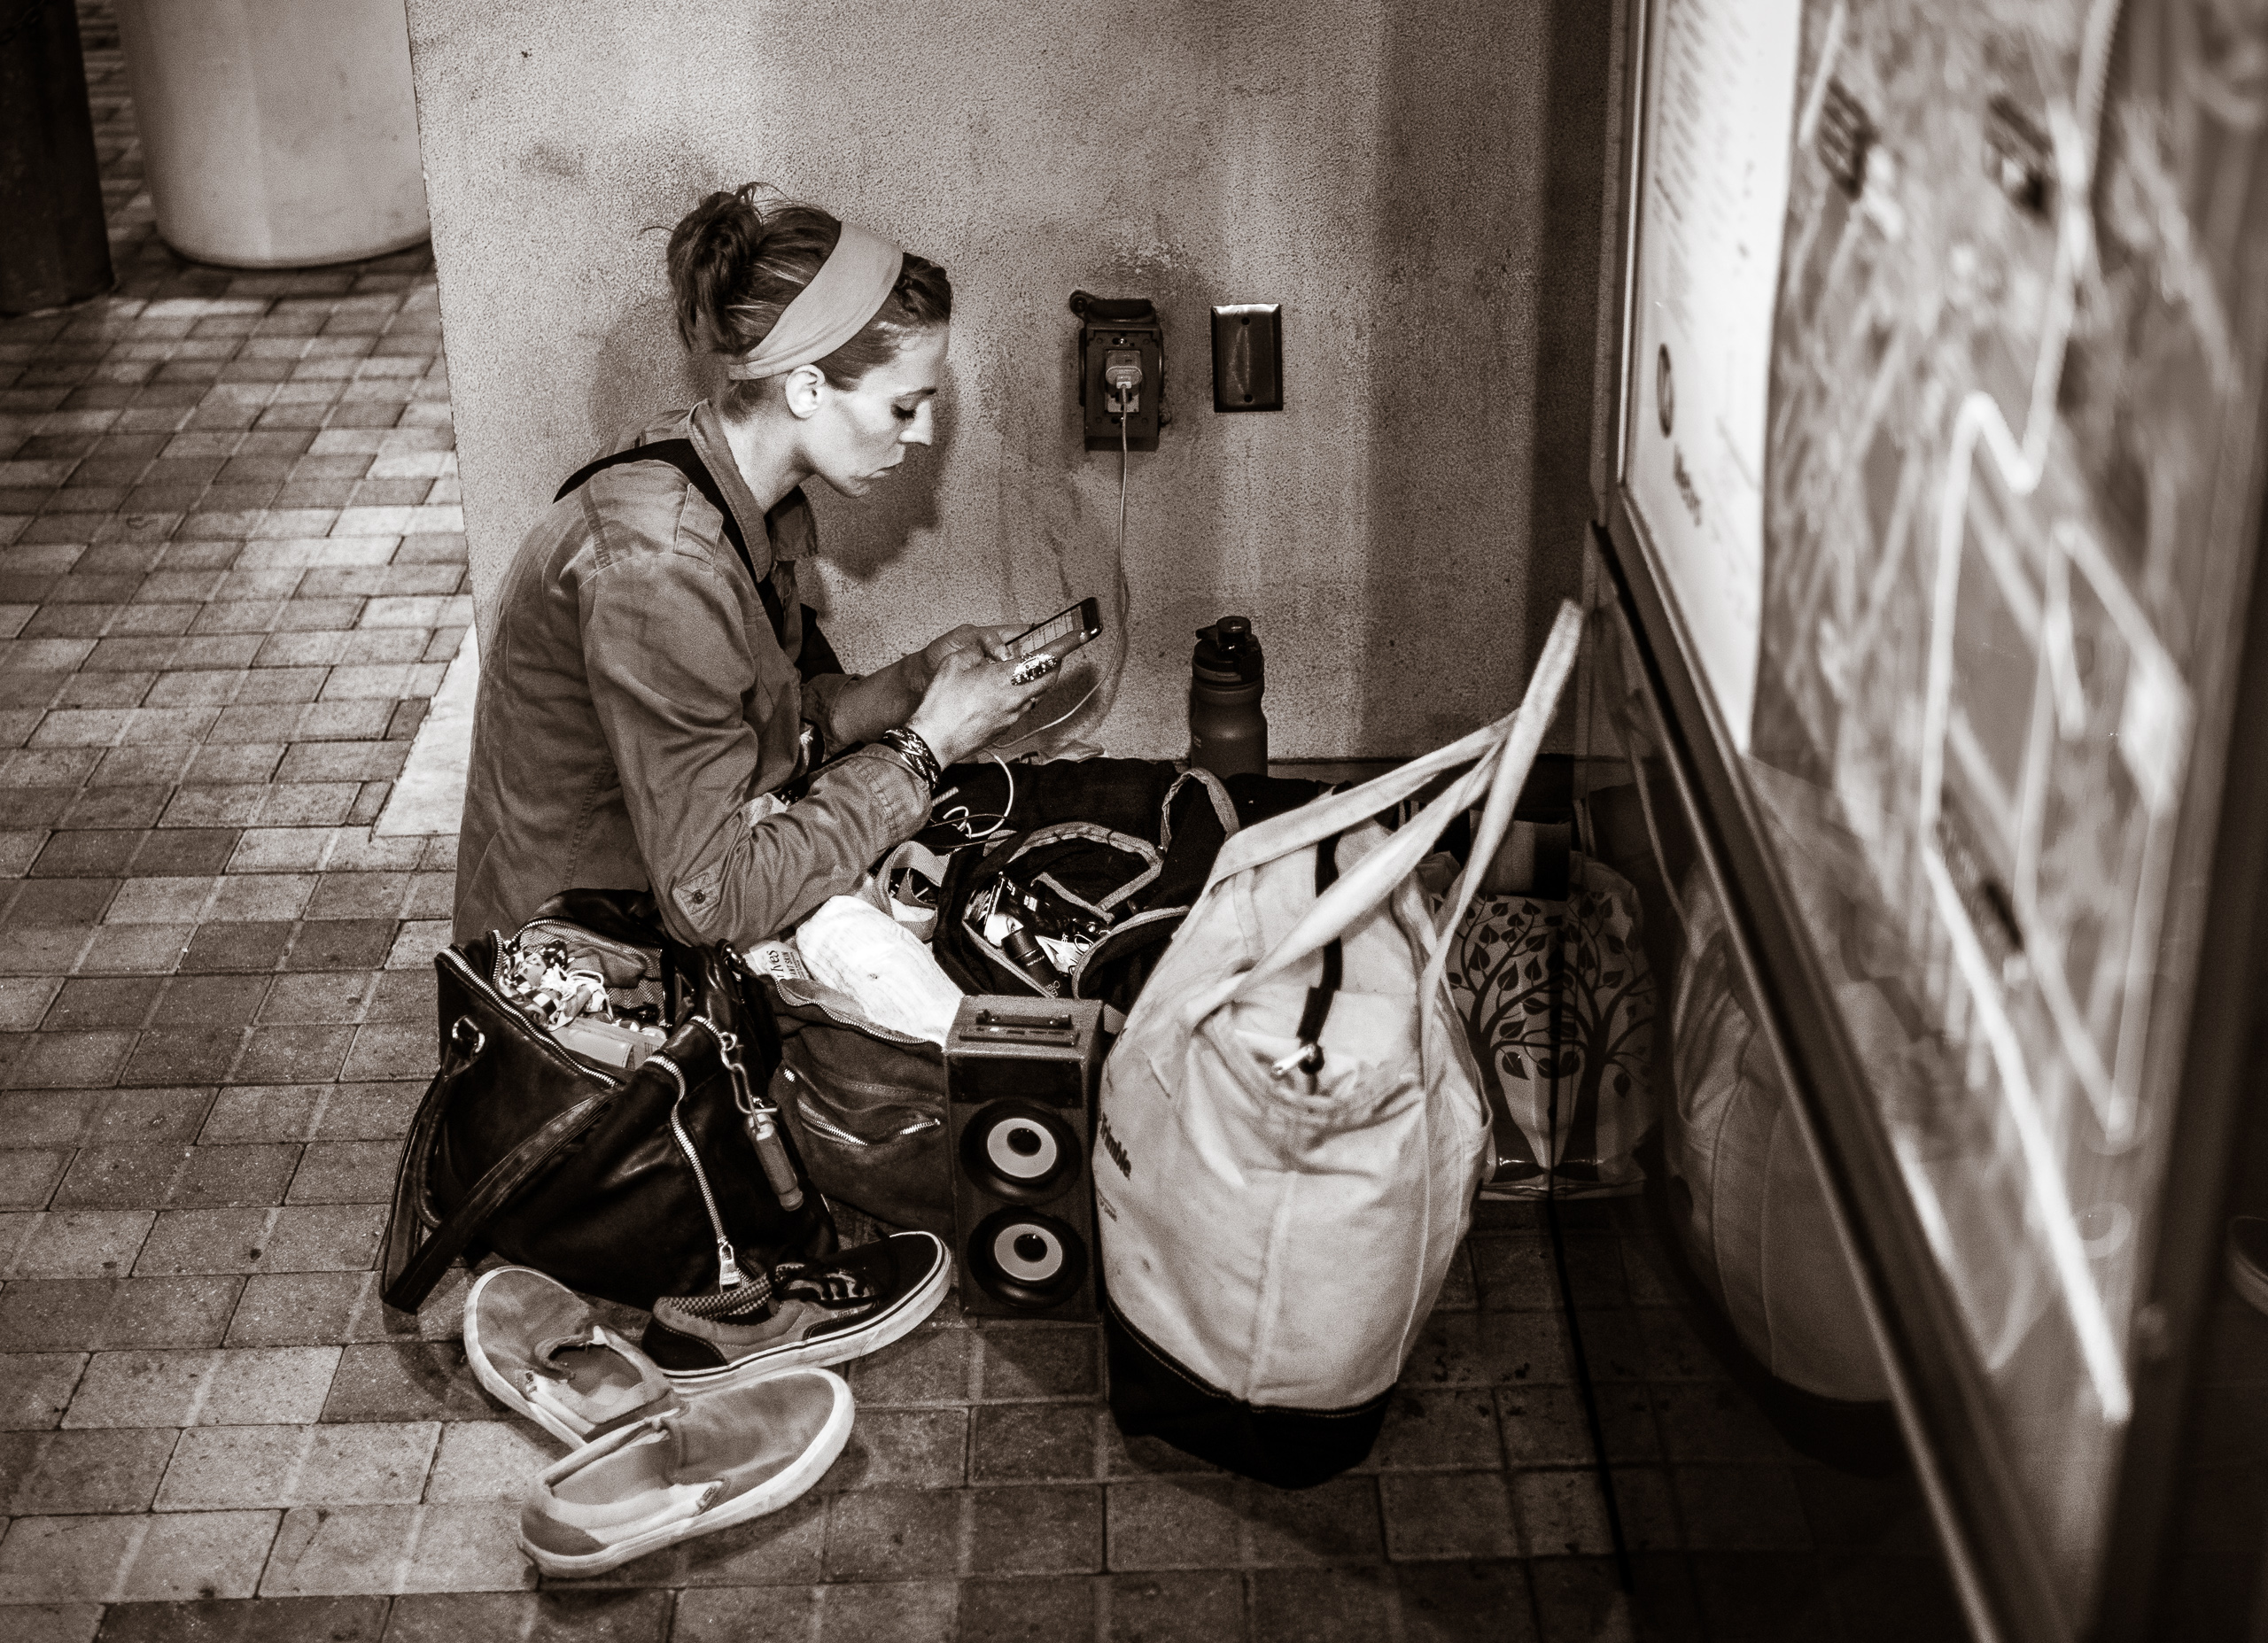 A Metro rider camps out at an electrical outlet on the Gold Line Platform at Union Station in Los Angeles. She has a couple of bags and checks her phone as it's plugged into an outlet